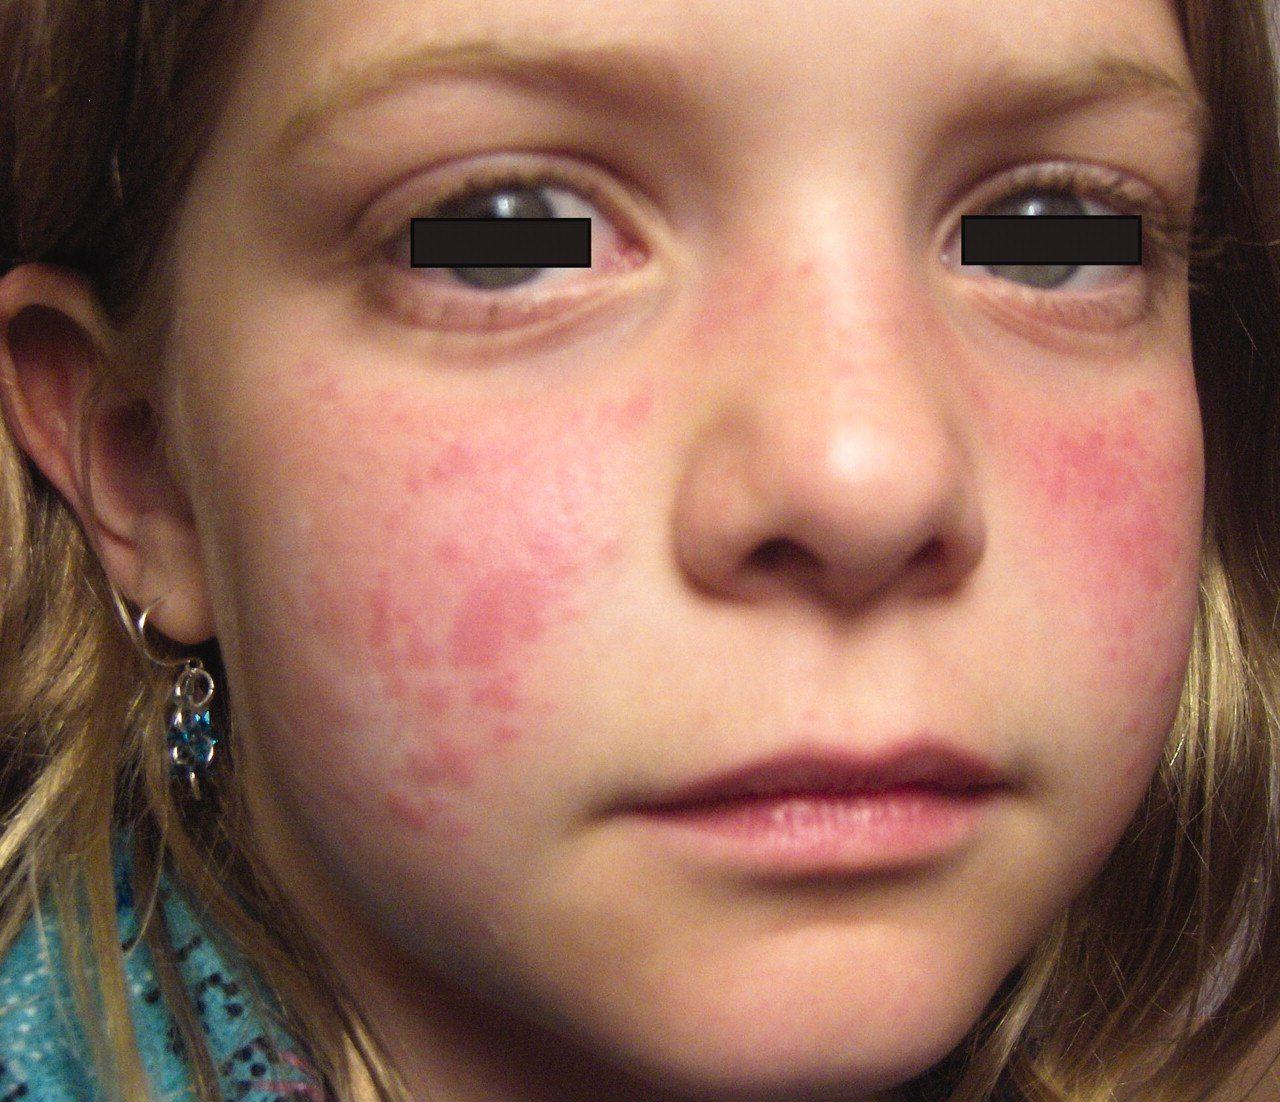 Spider reccomend Facial rashes due to rheumatoid arthritis